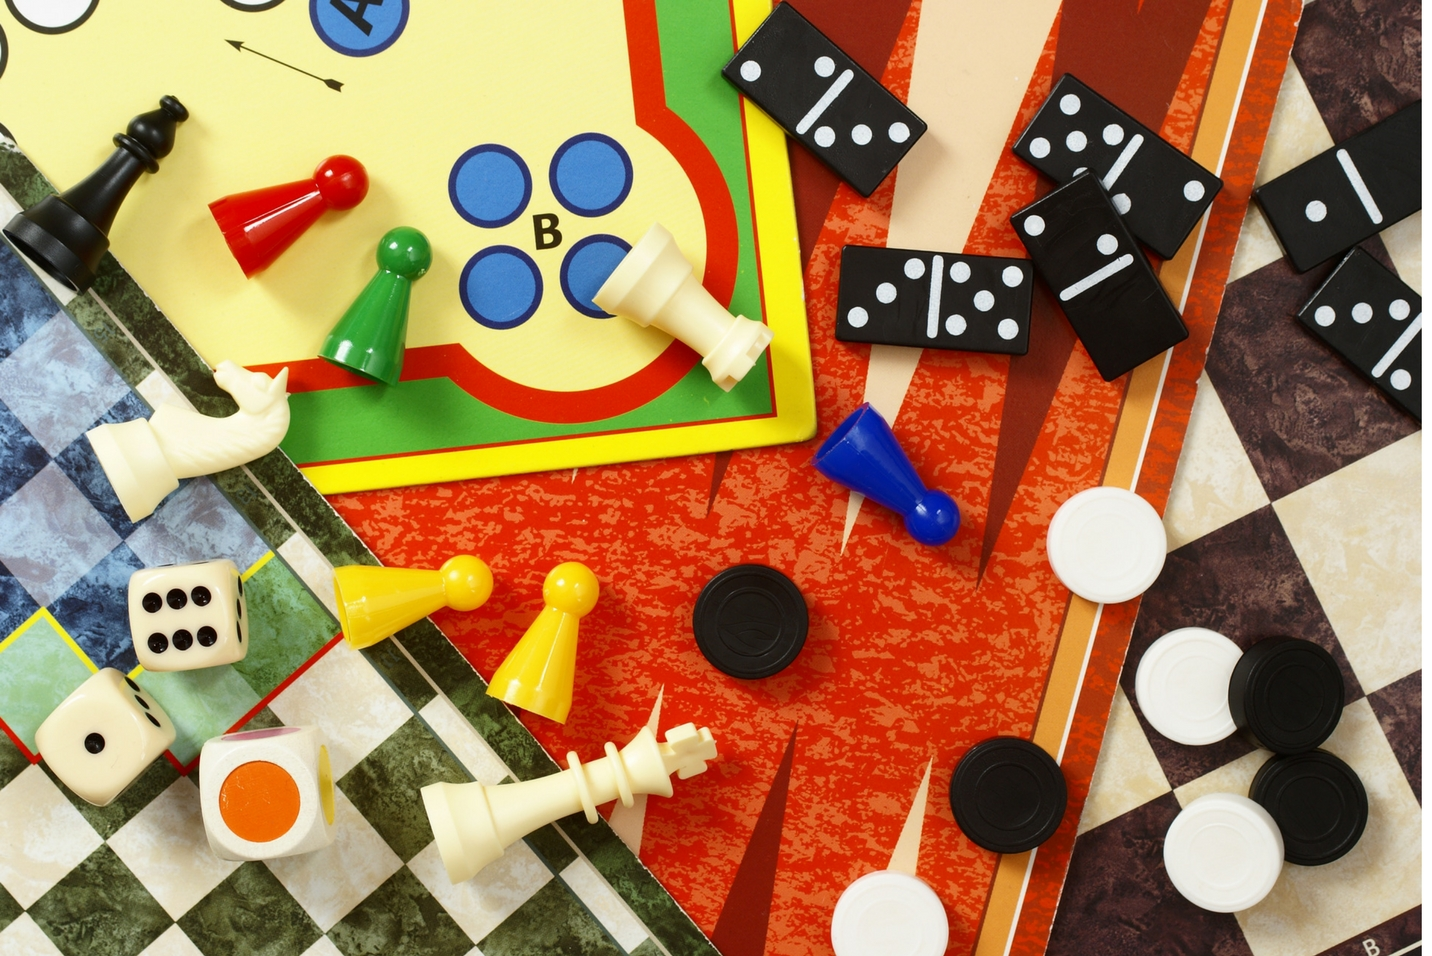 Planning to play dominos, checkers and dice at party